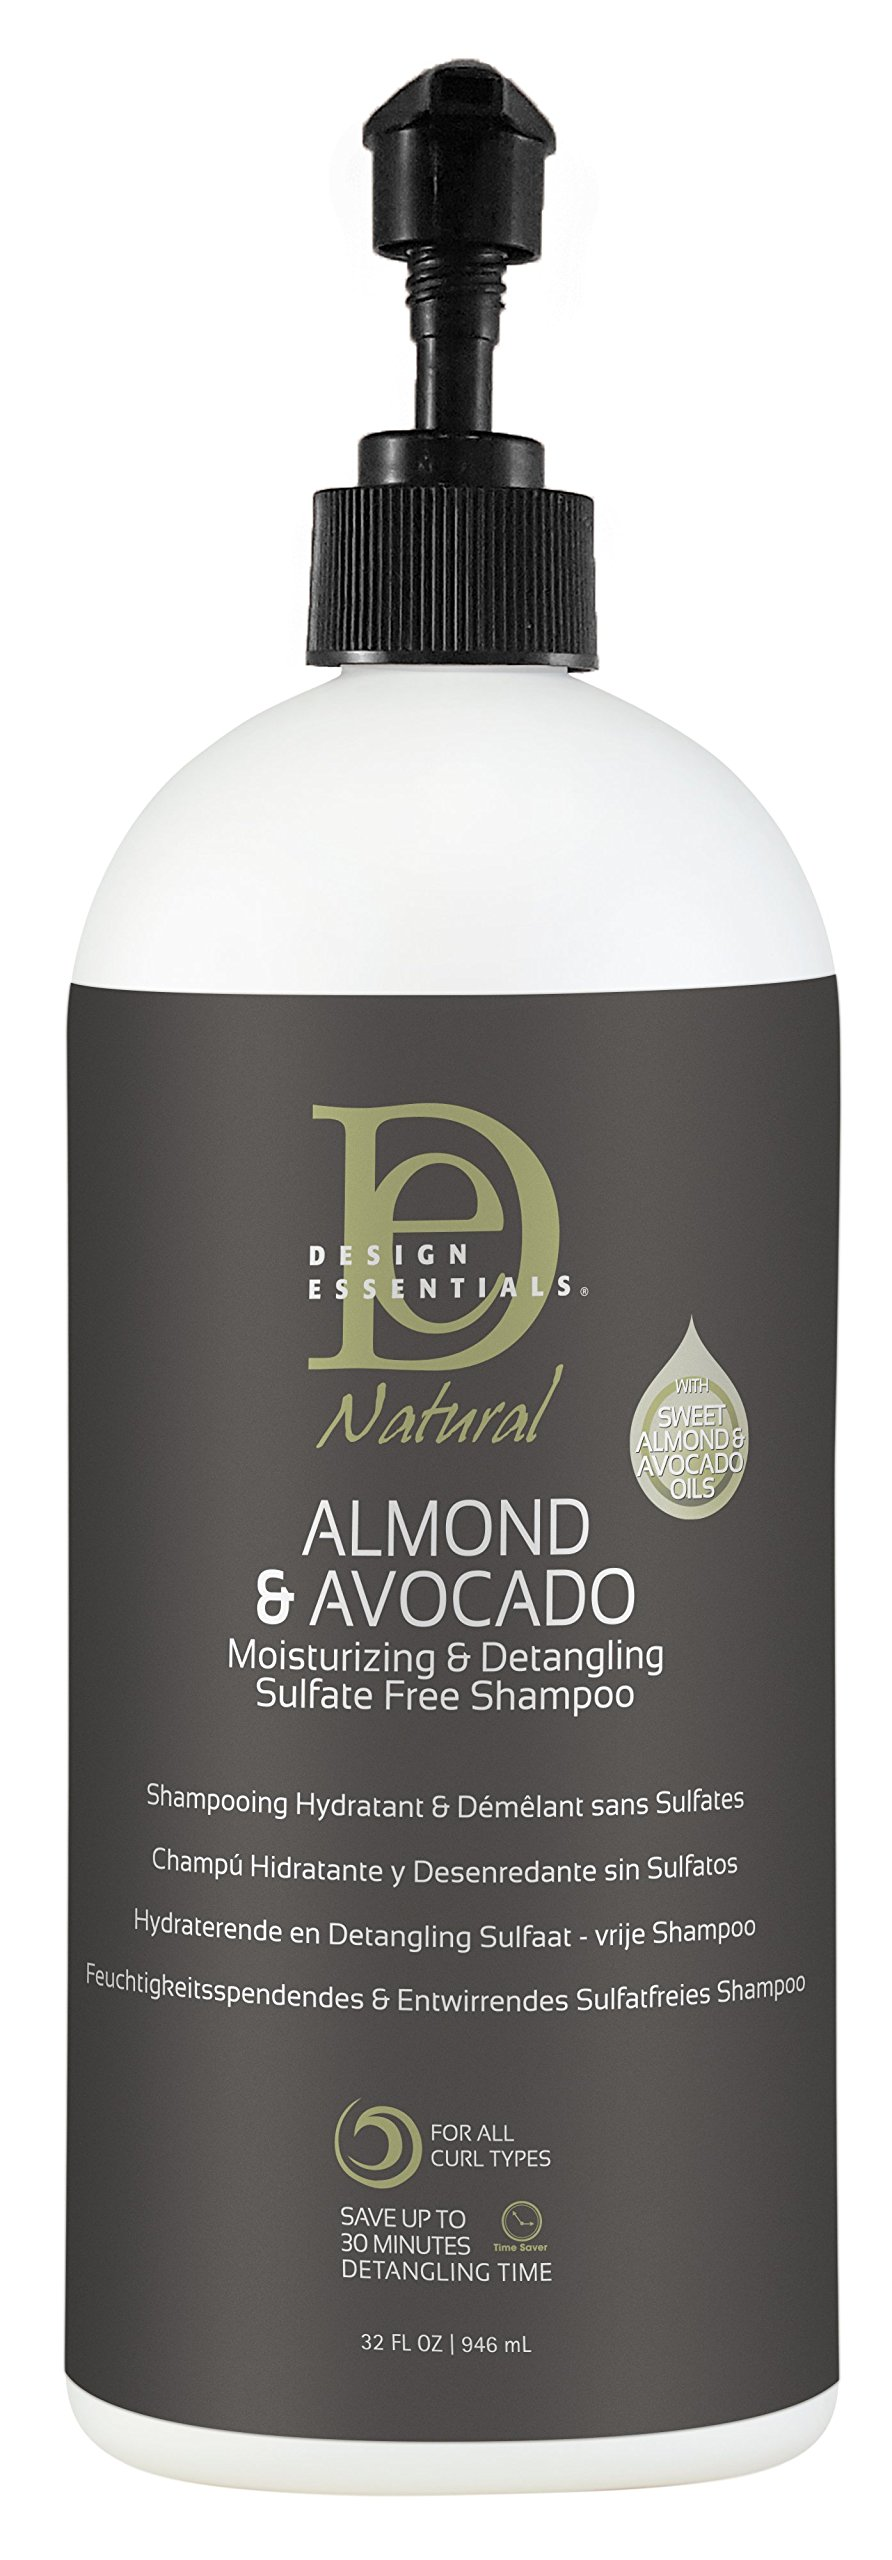 Design Essentials Natural Almond And Avocado Shampoo Somurichcom